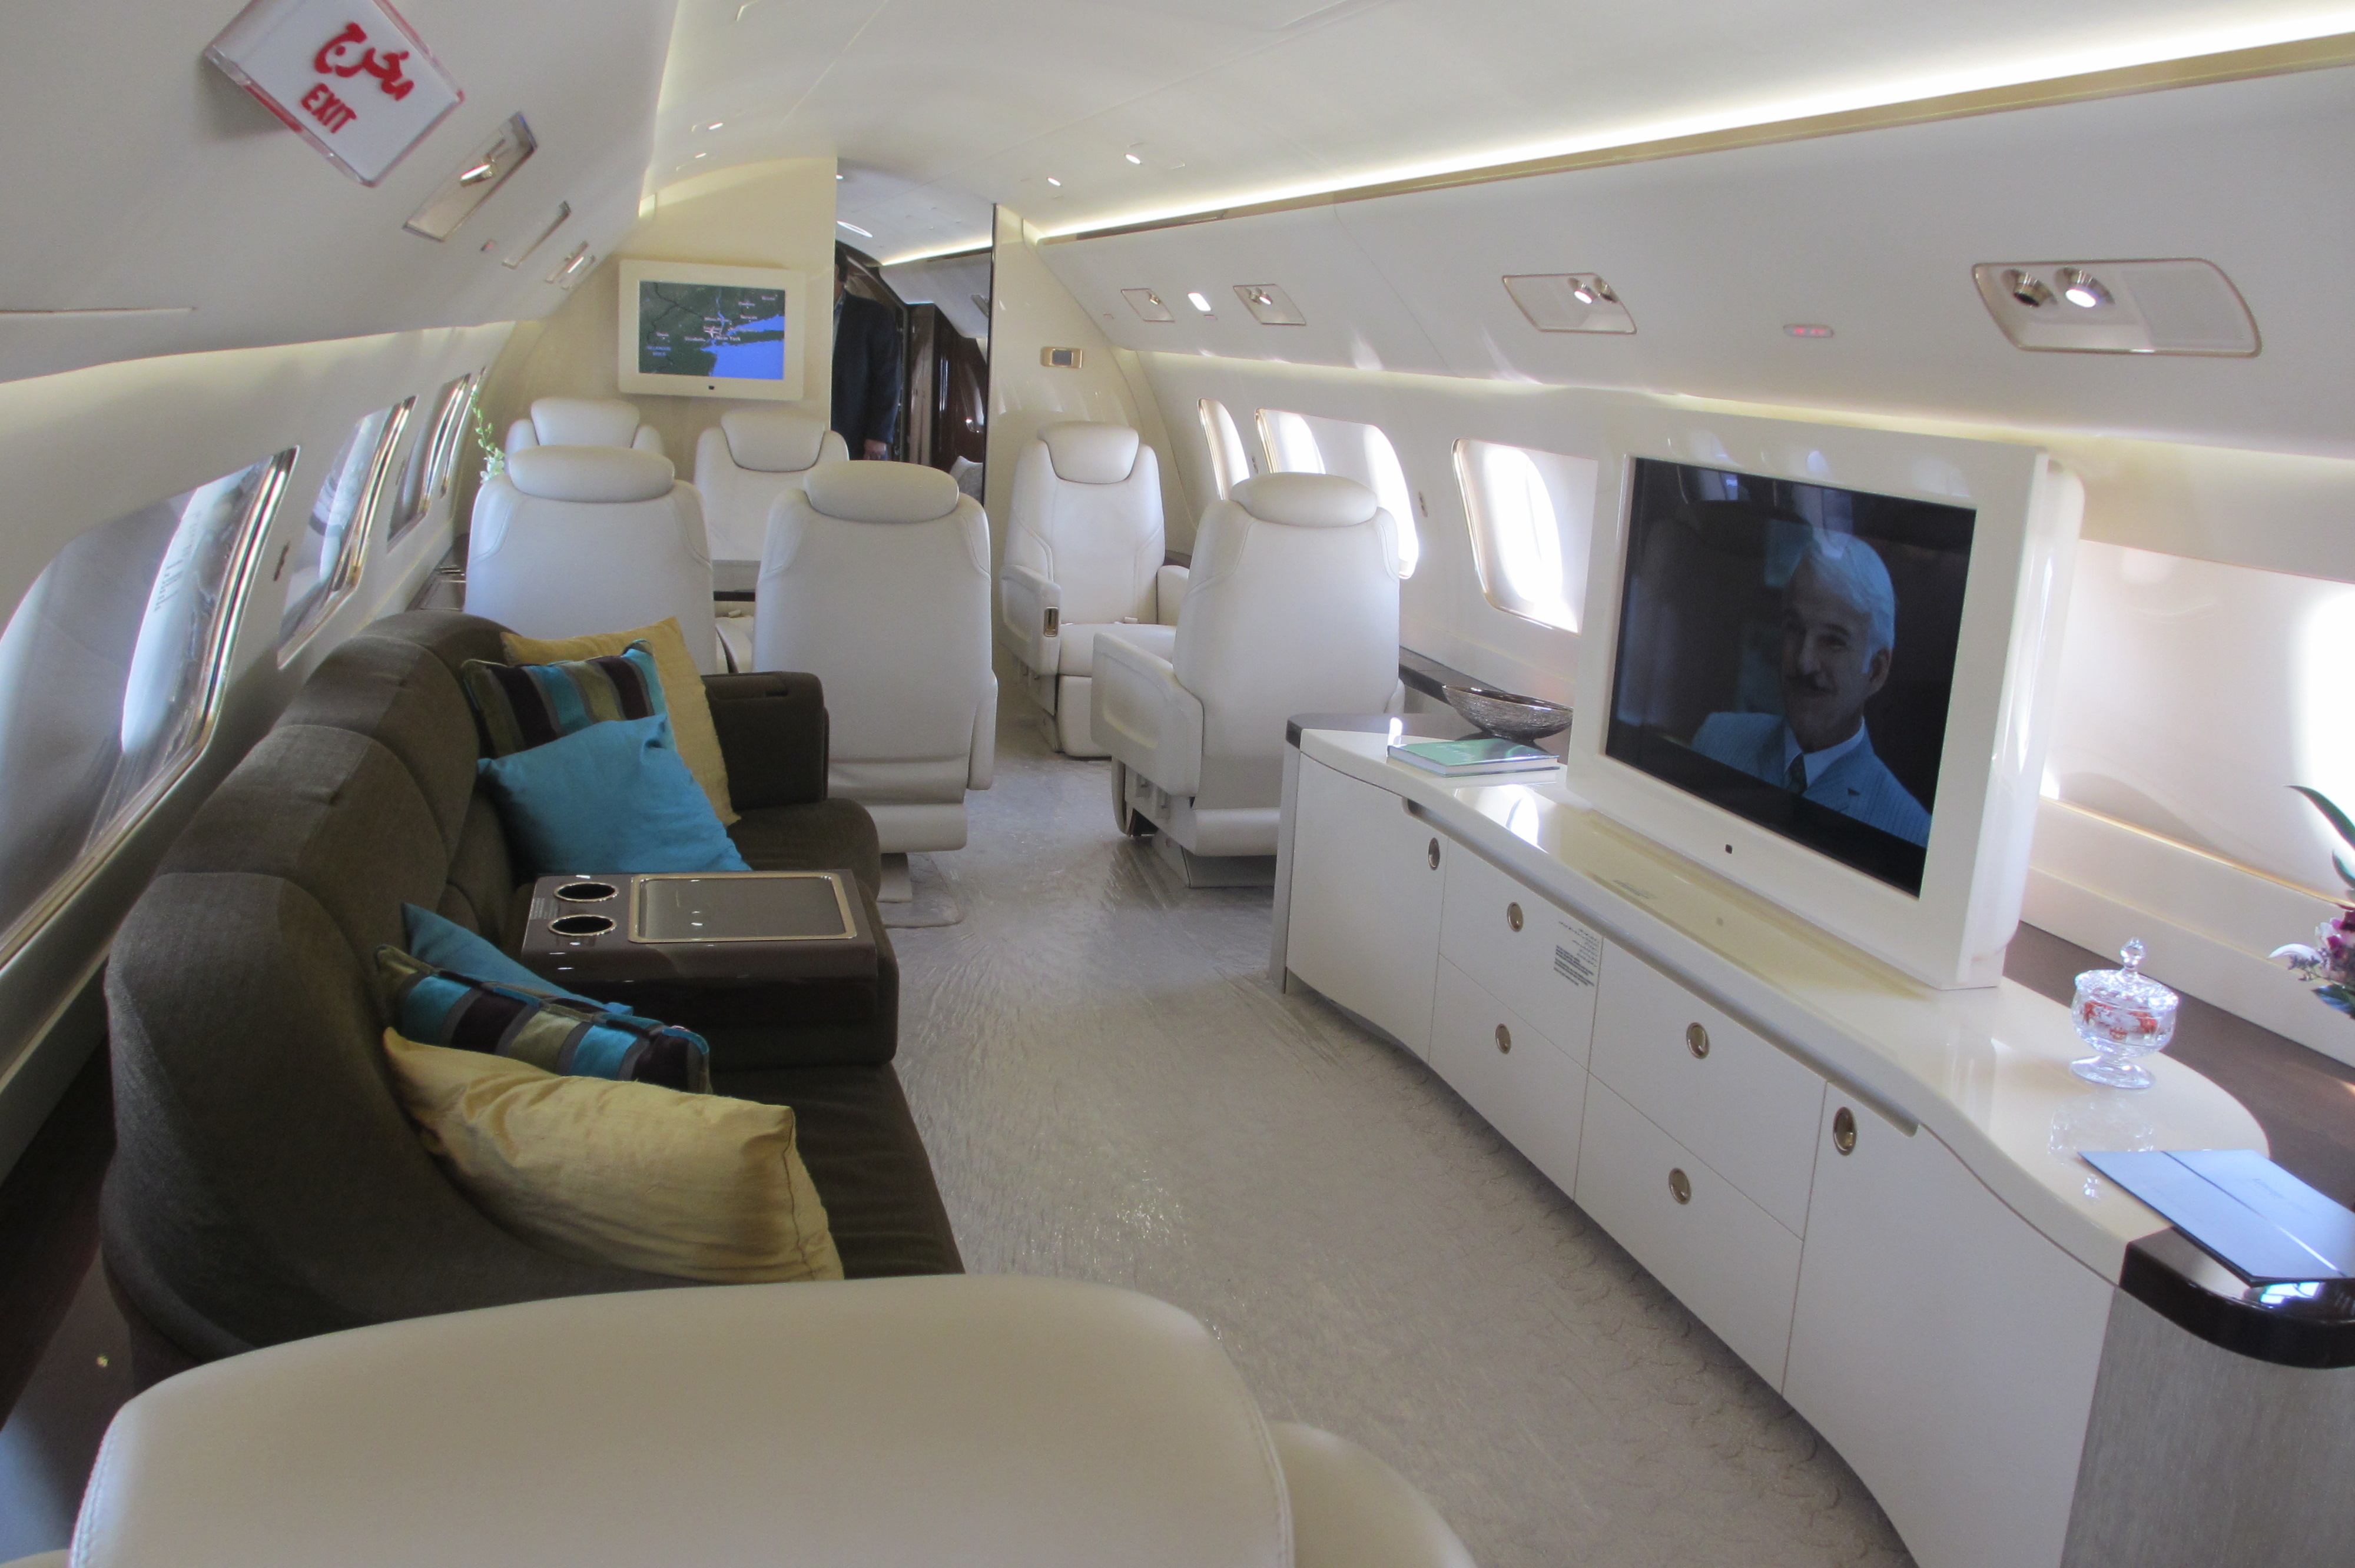 File:Embraer Lineage 1000 interior living room.jpg - Wikimedia Commons